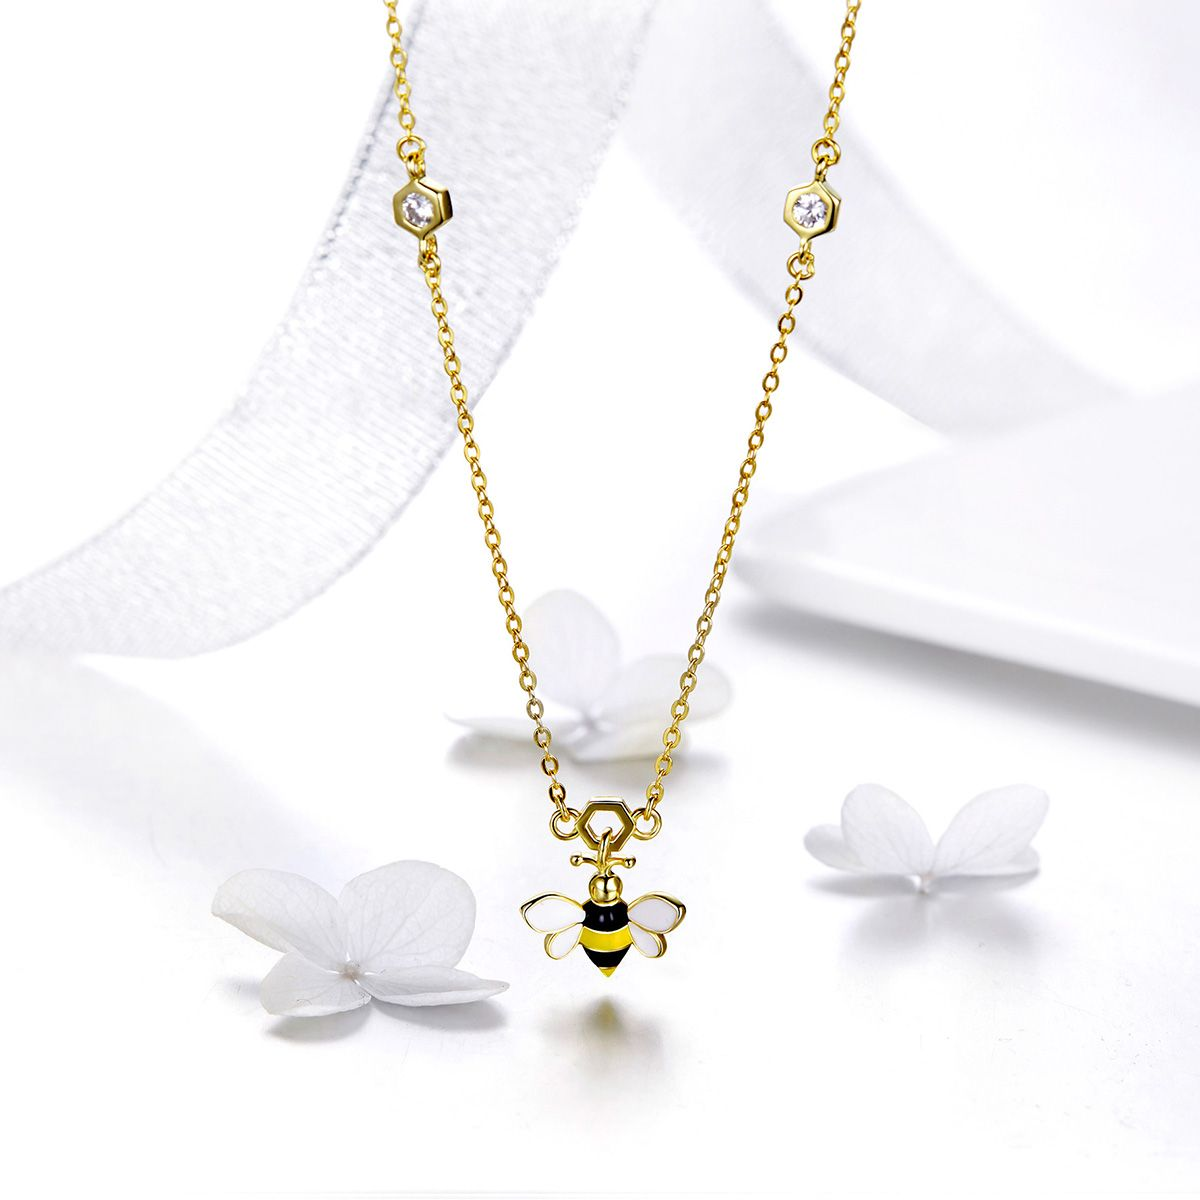 925 Sterling Silver Charm Necklace Hardworking Bee With Clear CZ Fashion Jewelry